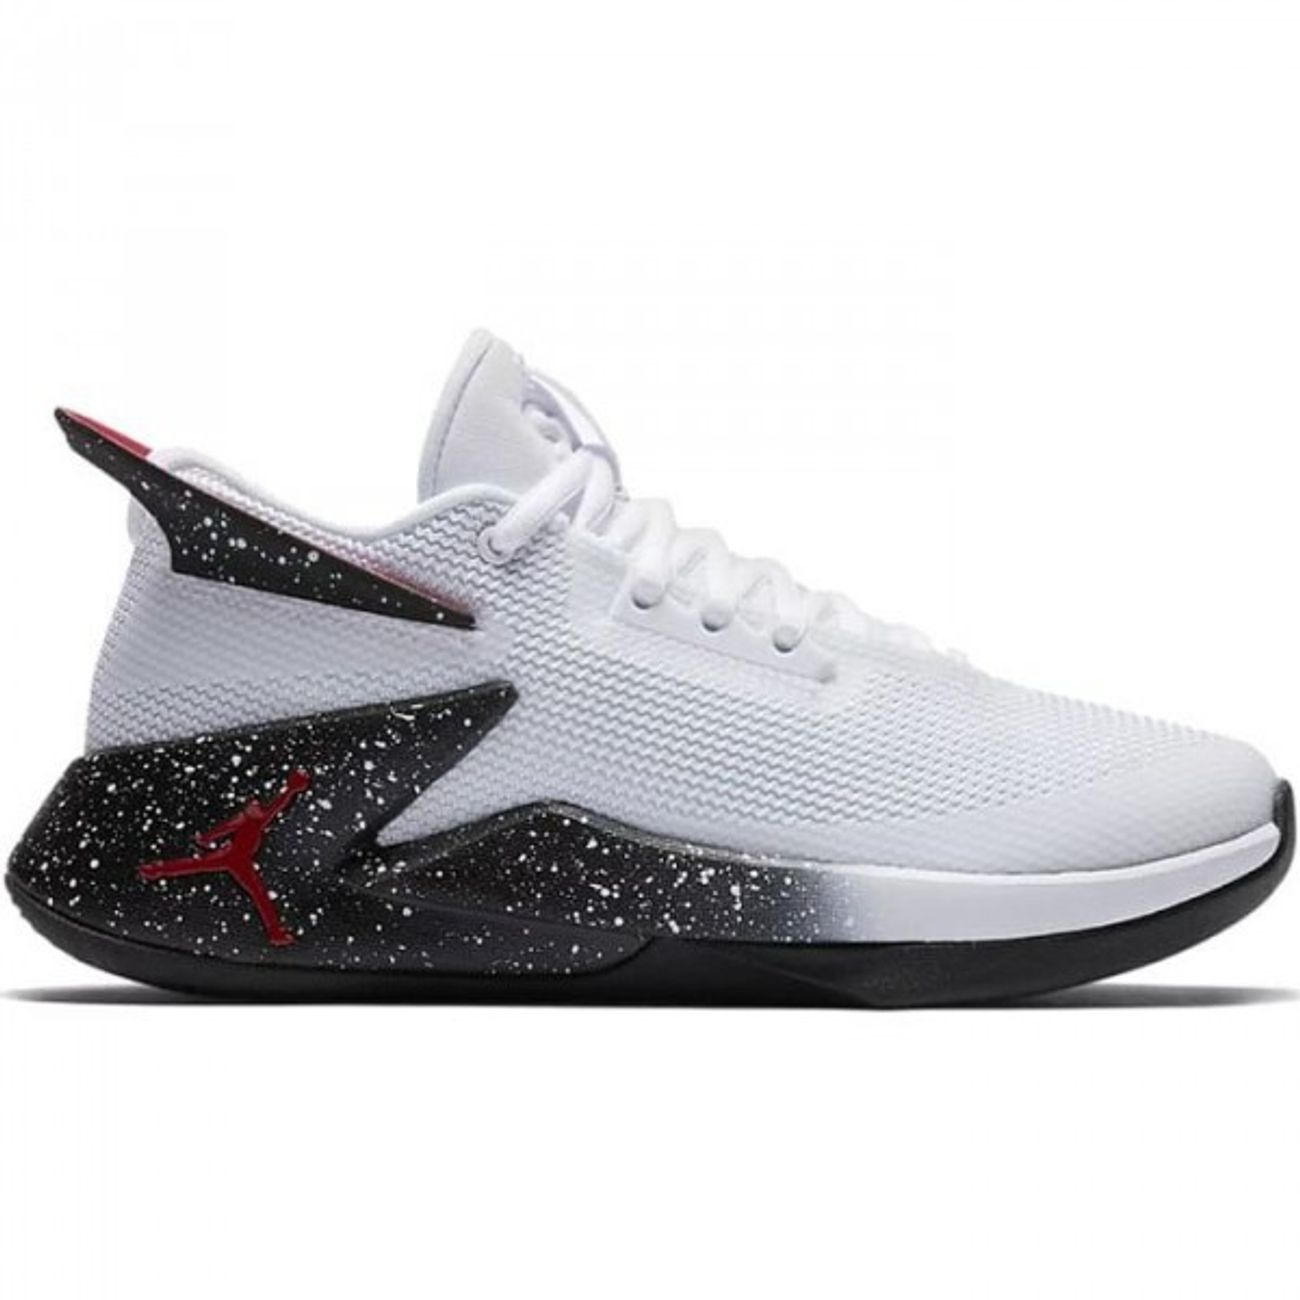 7e4e06a030b Basketball enfant JORDAN Chaussure de Basketball Jordan Fly Lockdown Blanc  pour Junior Pointure - 36.5 ...